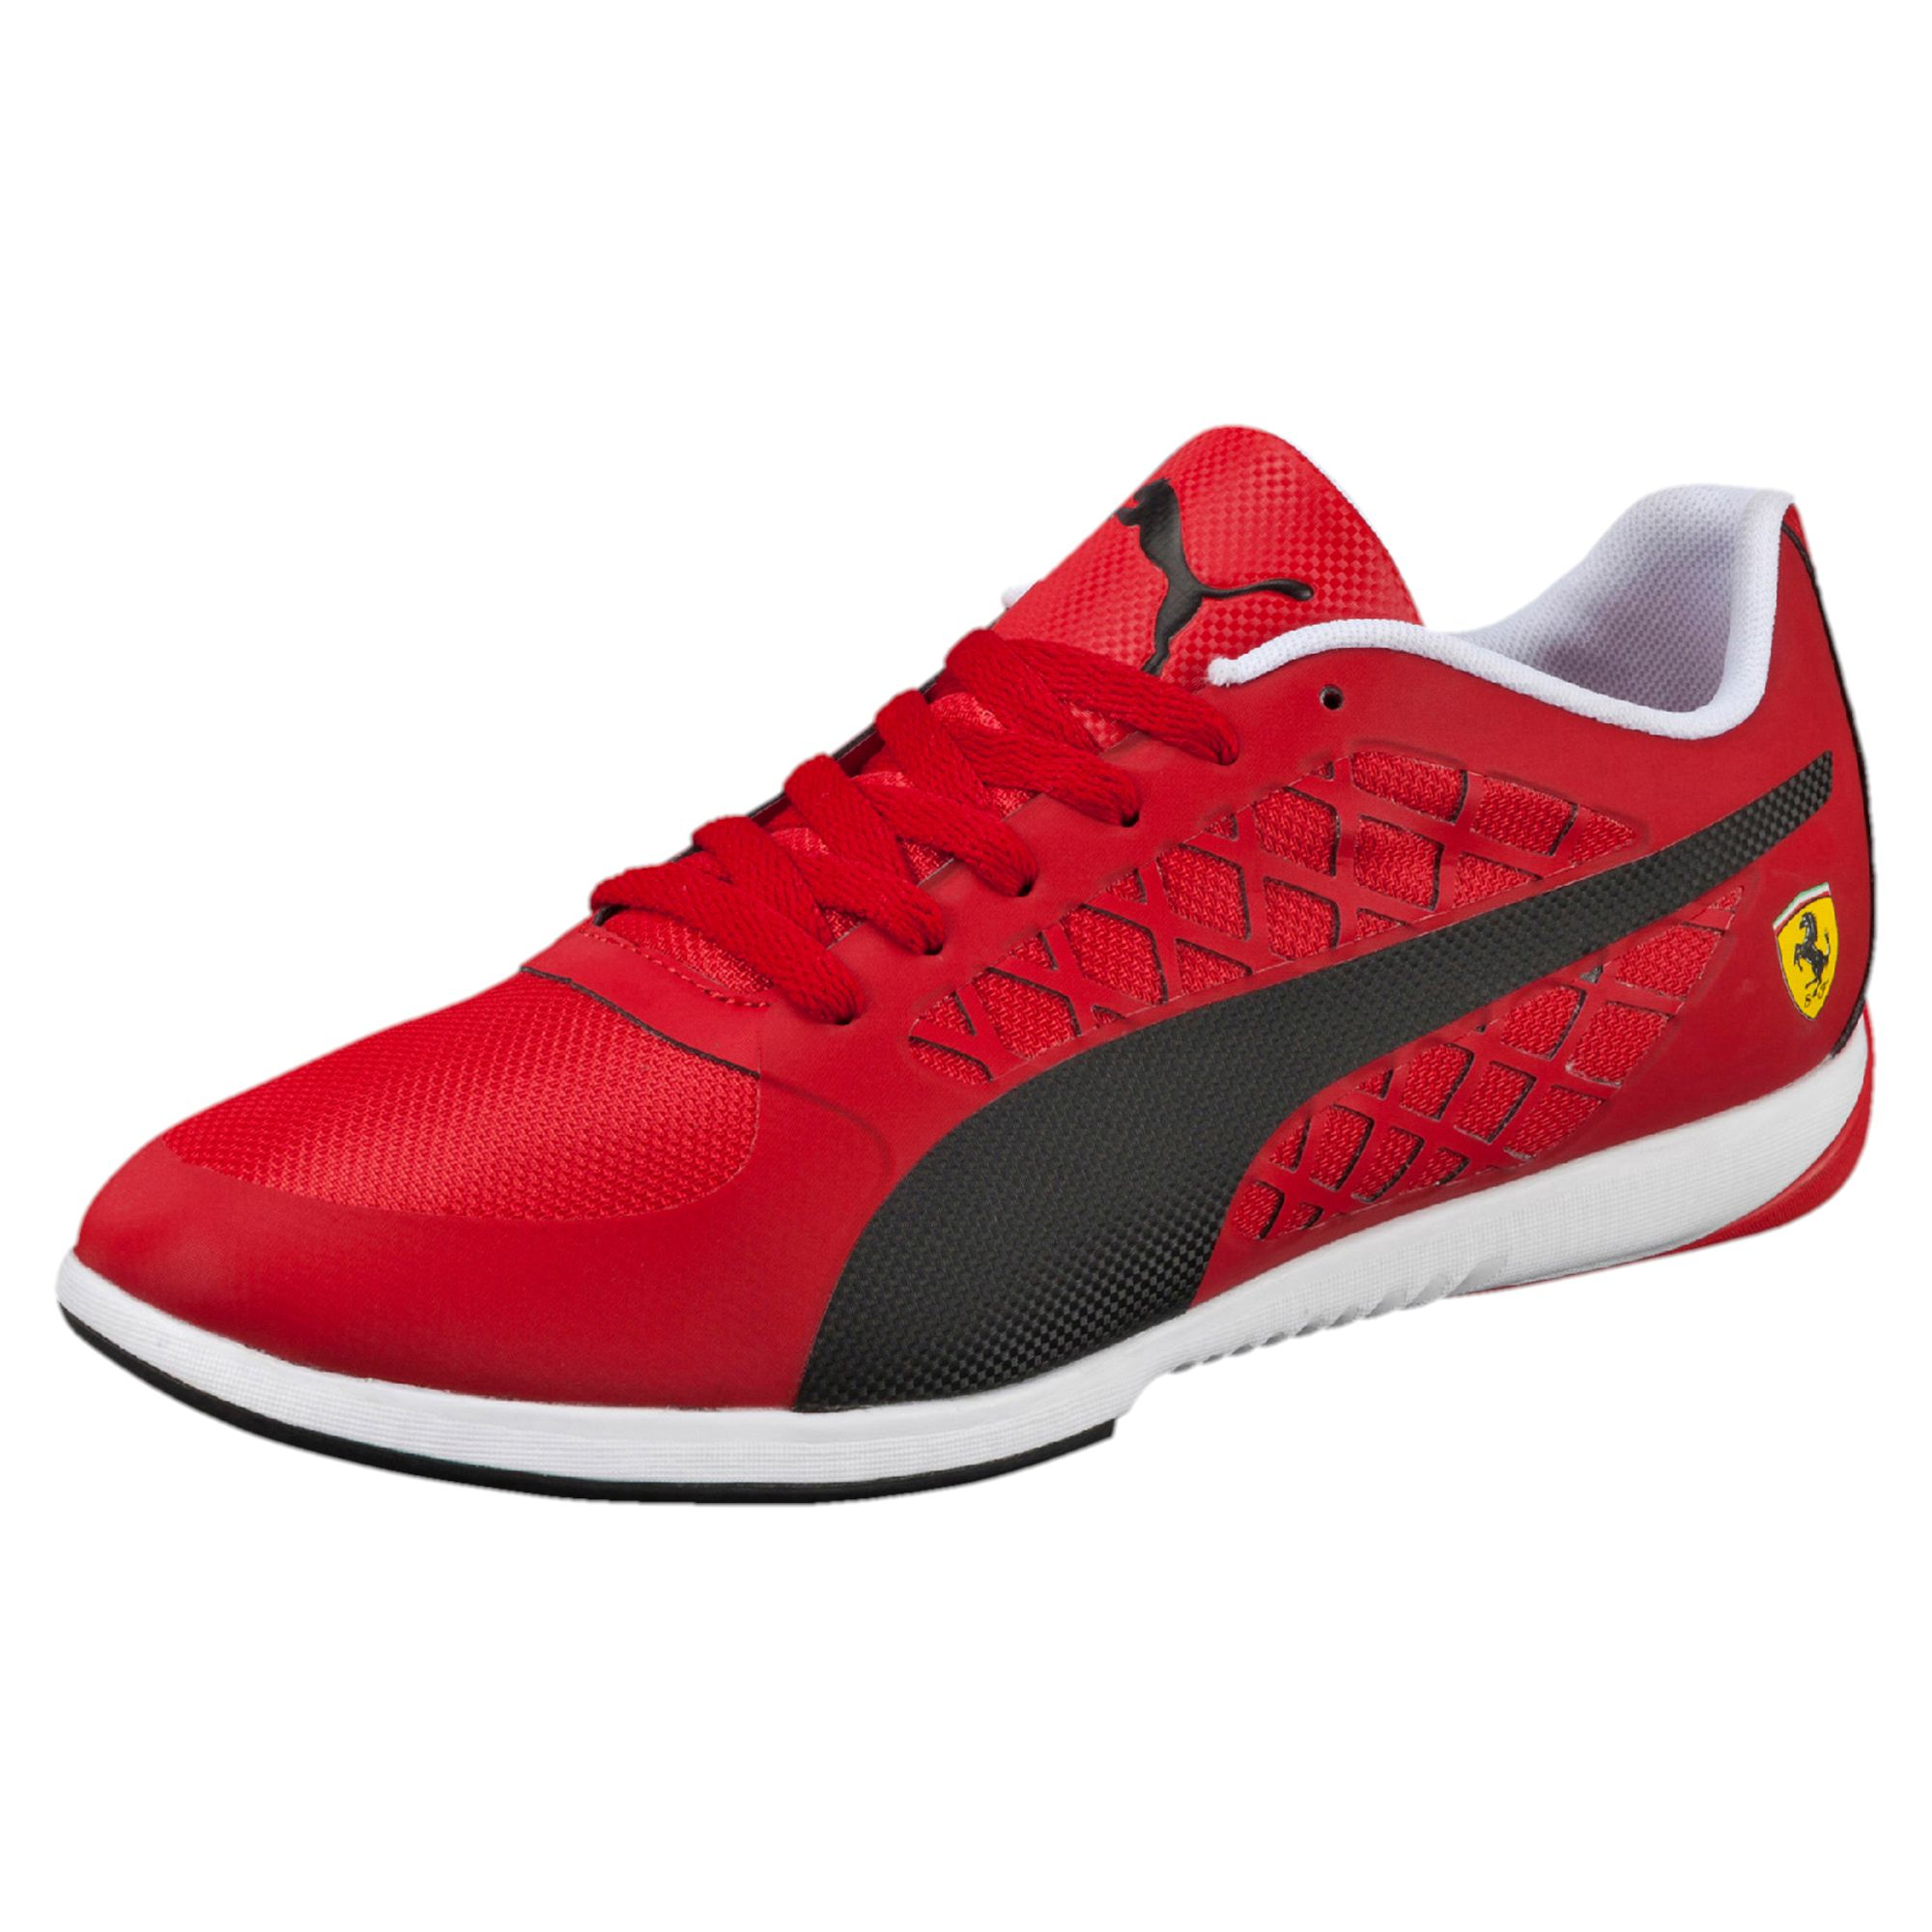 Puma Ferrari Valorosso Men's Shoes in Red for Men